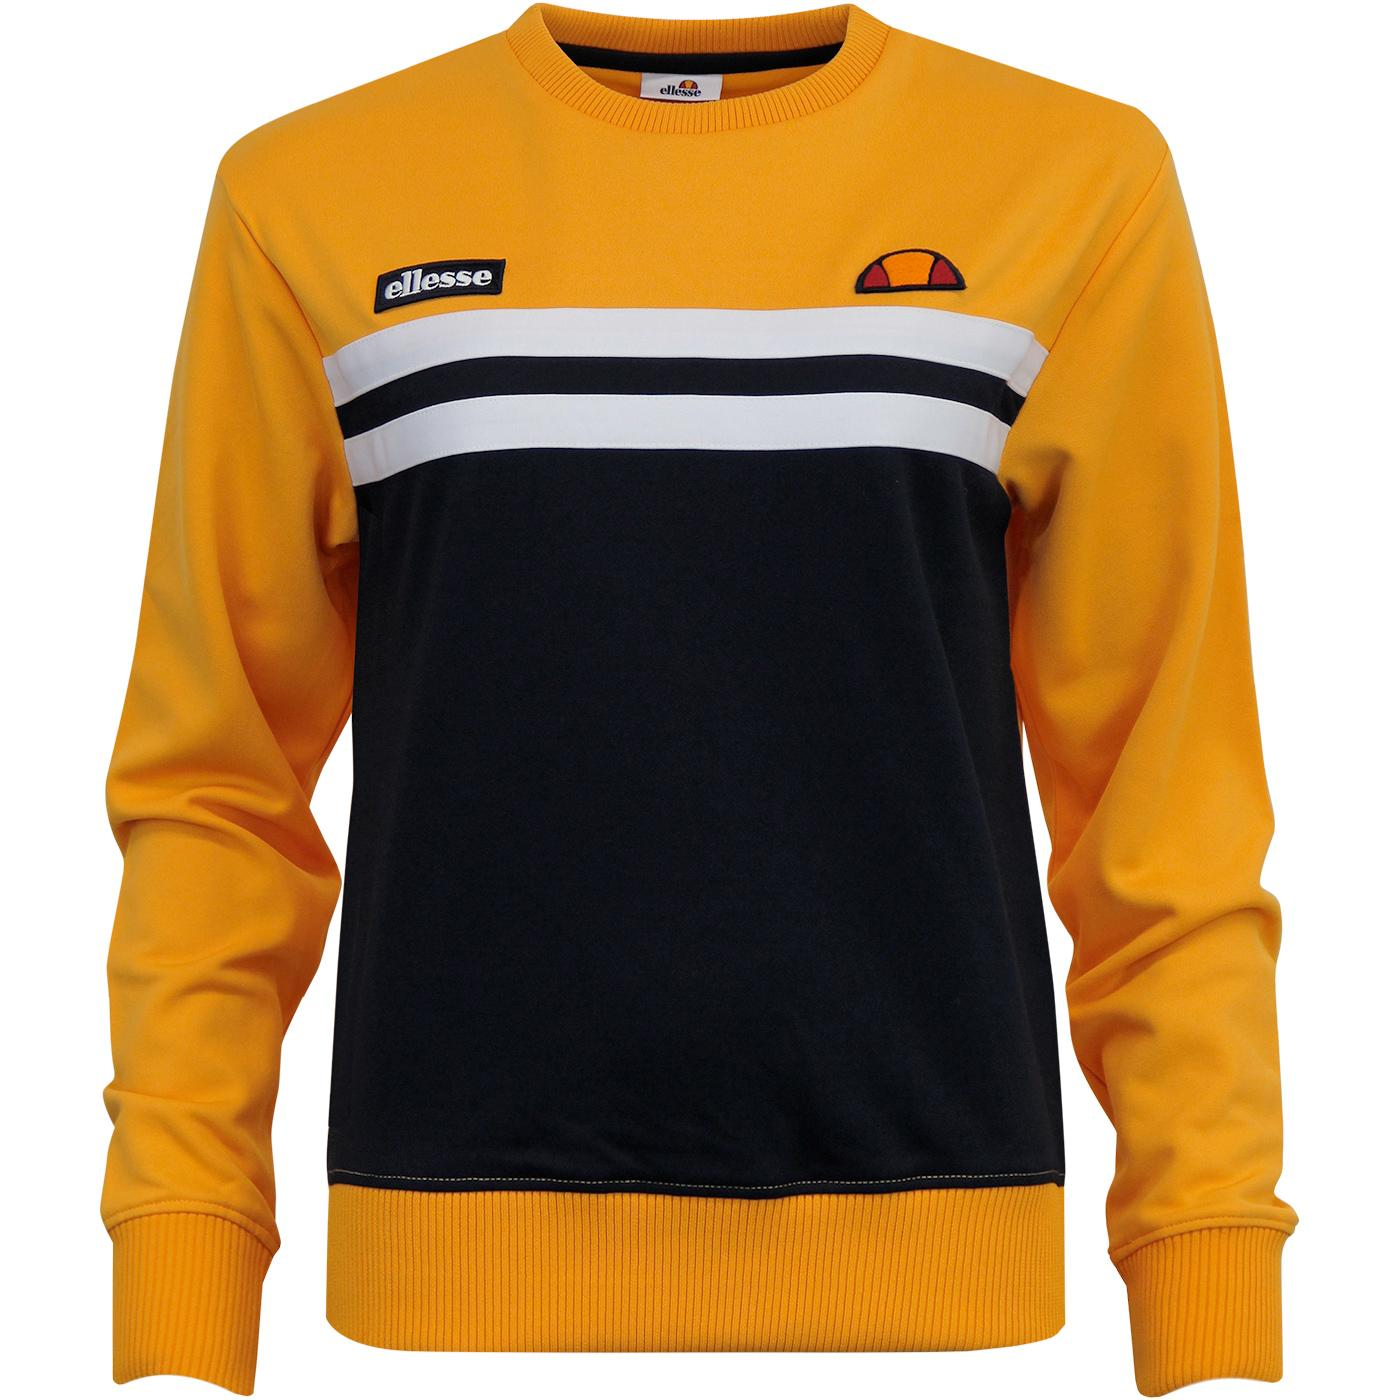 Taria ELLESSE Womens Eightie's Panel Sweatshirt Y